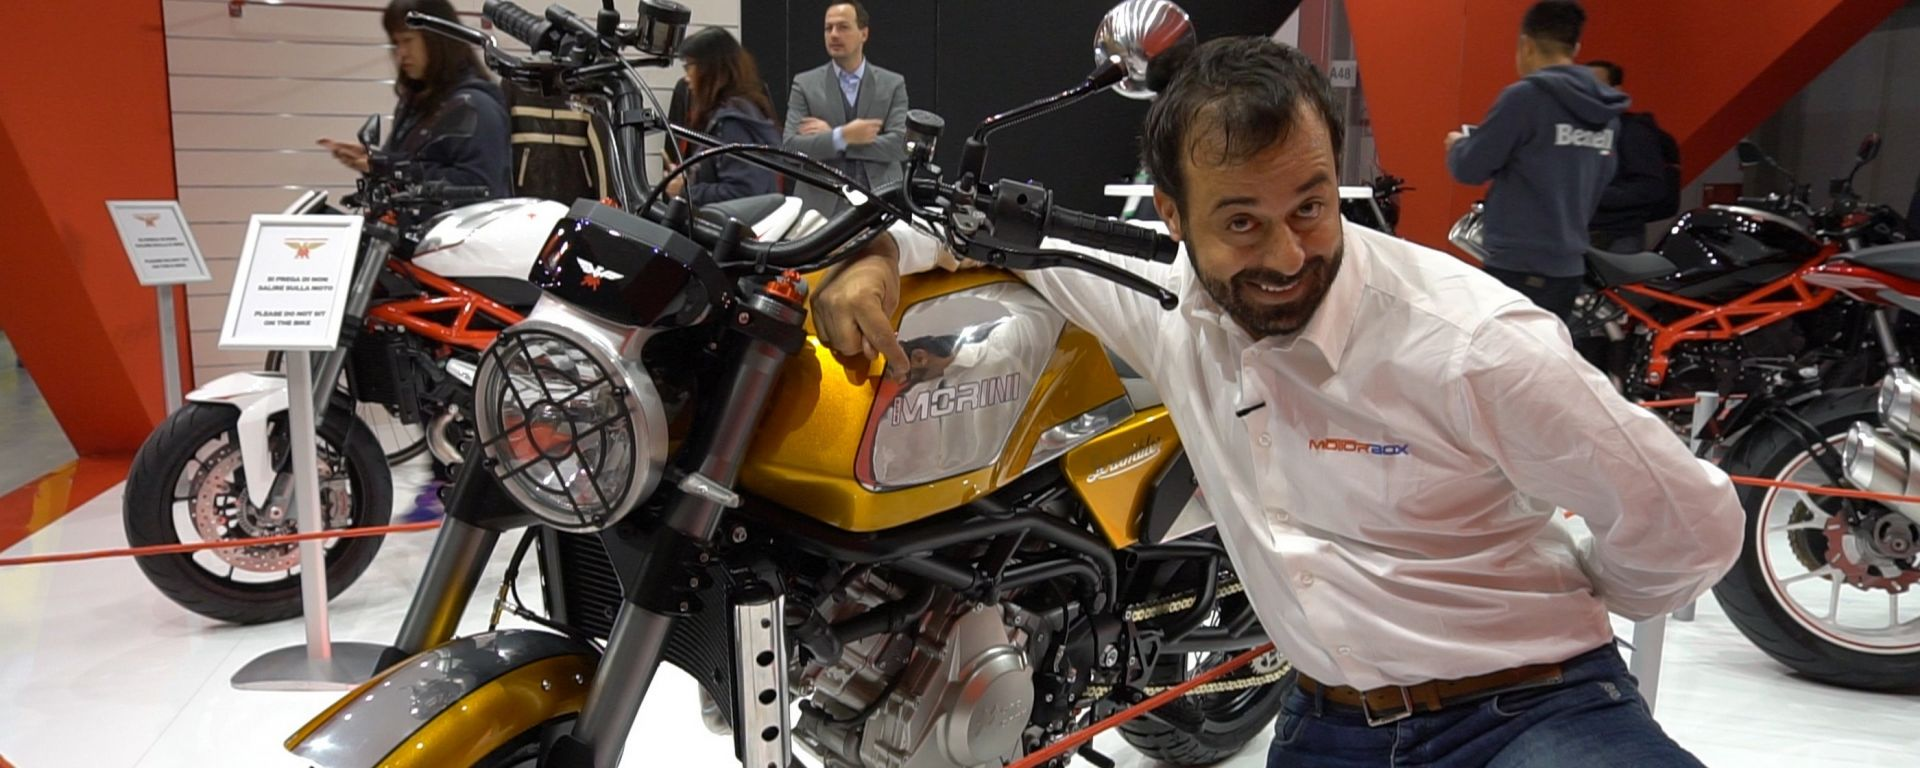 Moto Morini Scrambler: debutto a Eicma 2017 ]VIDEO]